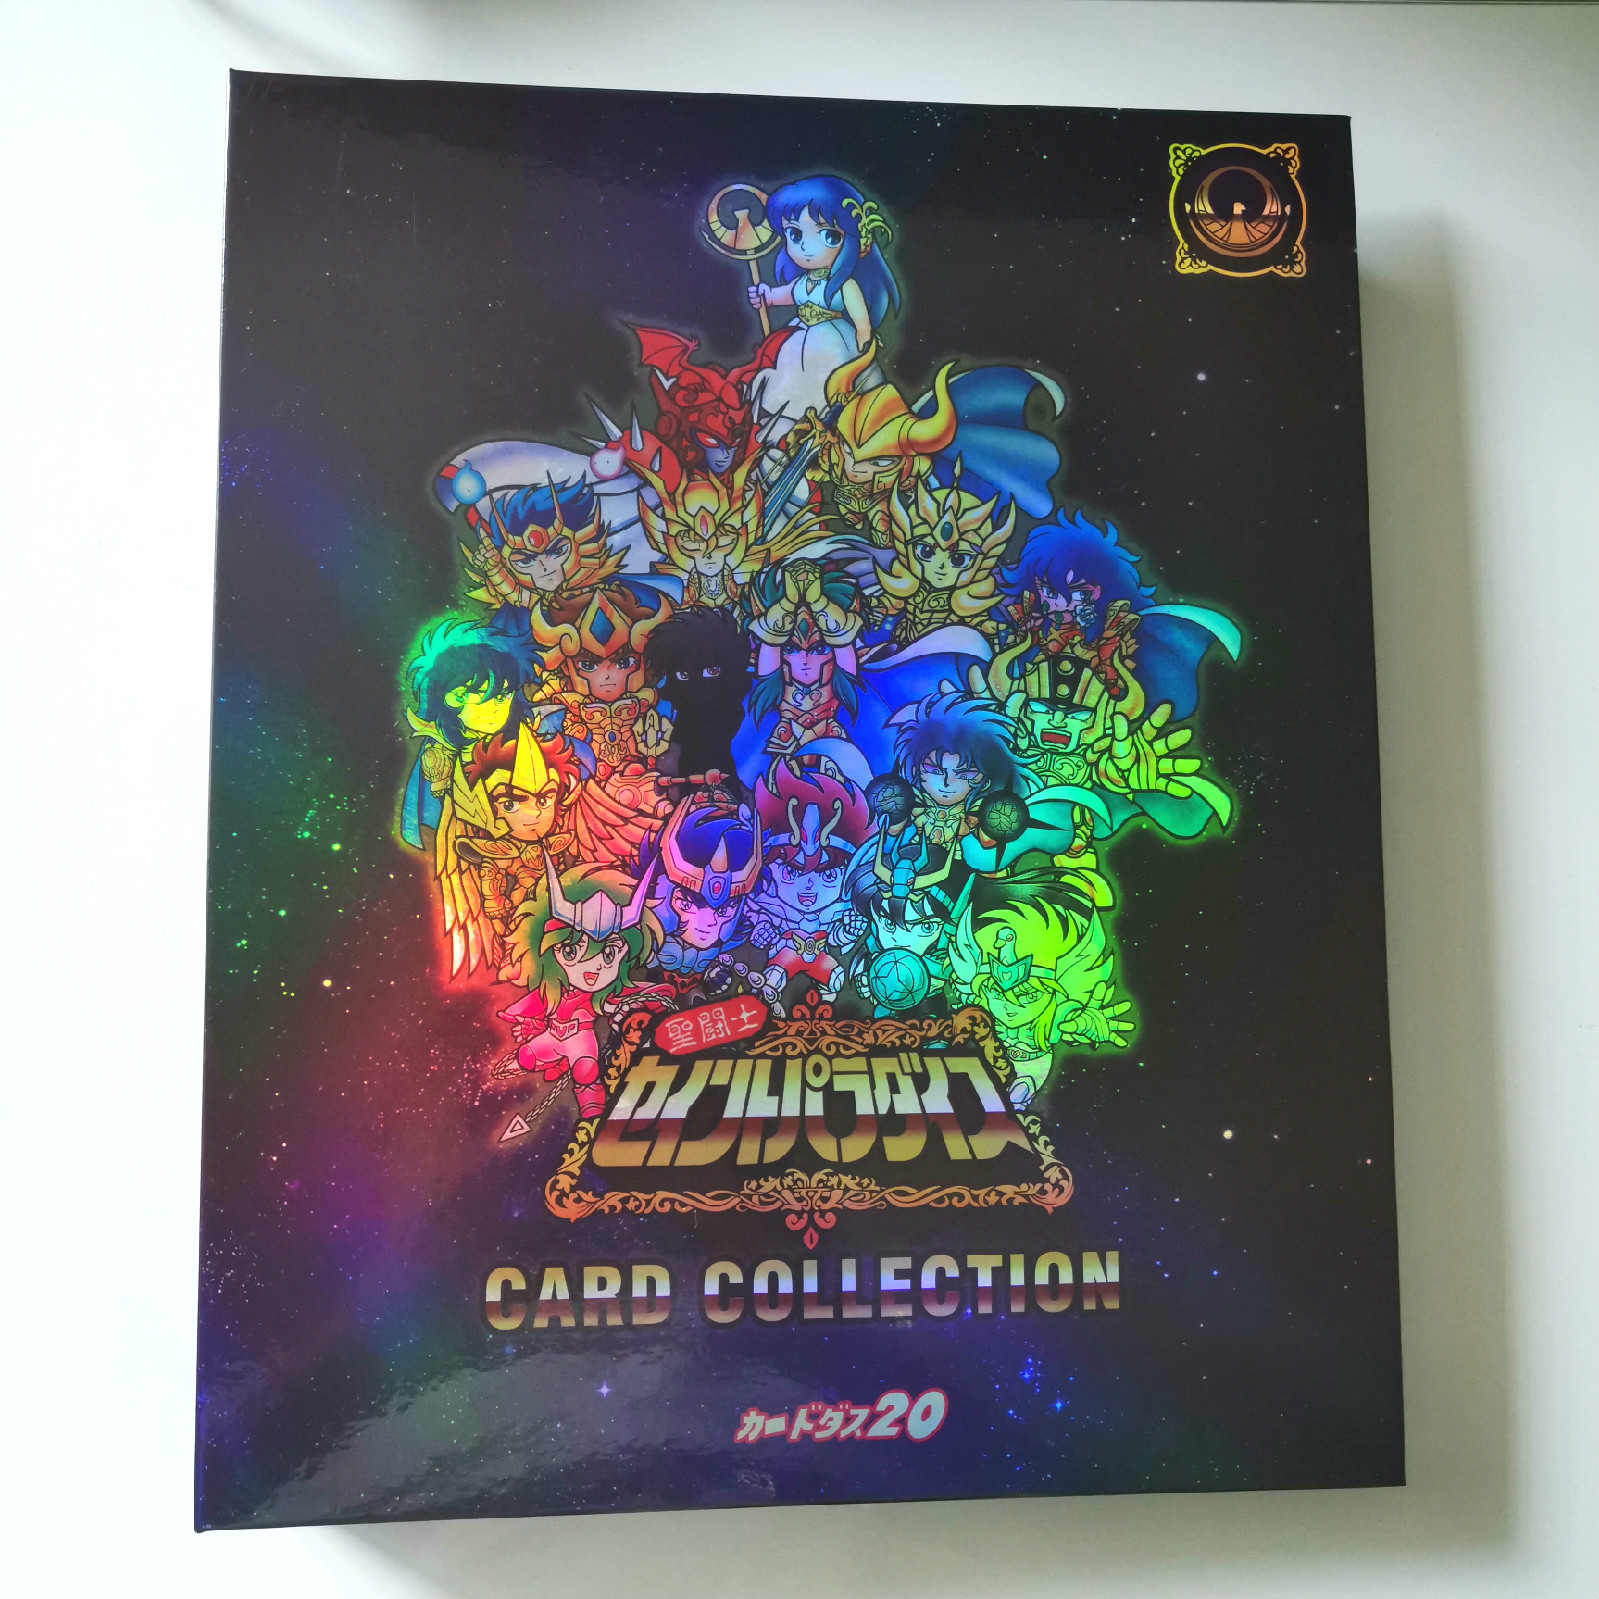 Saint Seiya Can Hold 900 Cards Toys Hobbies Hobby Collectibles Game Collection Anime Card